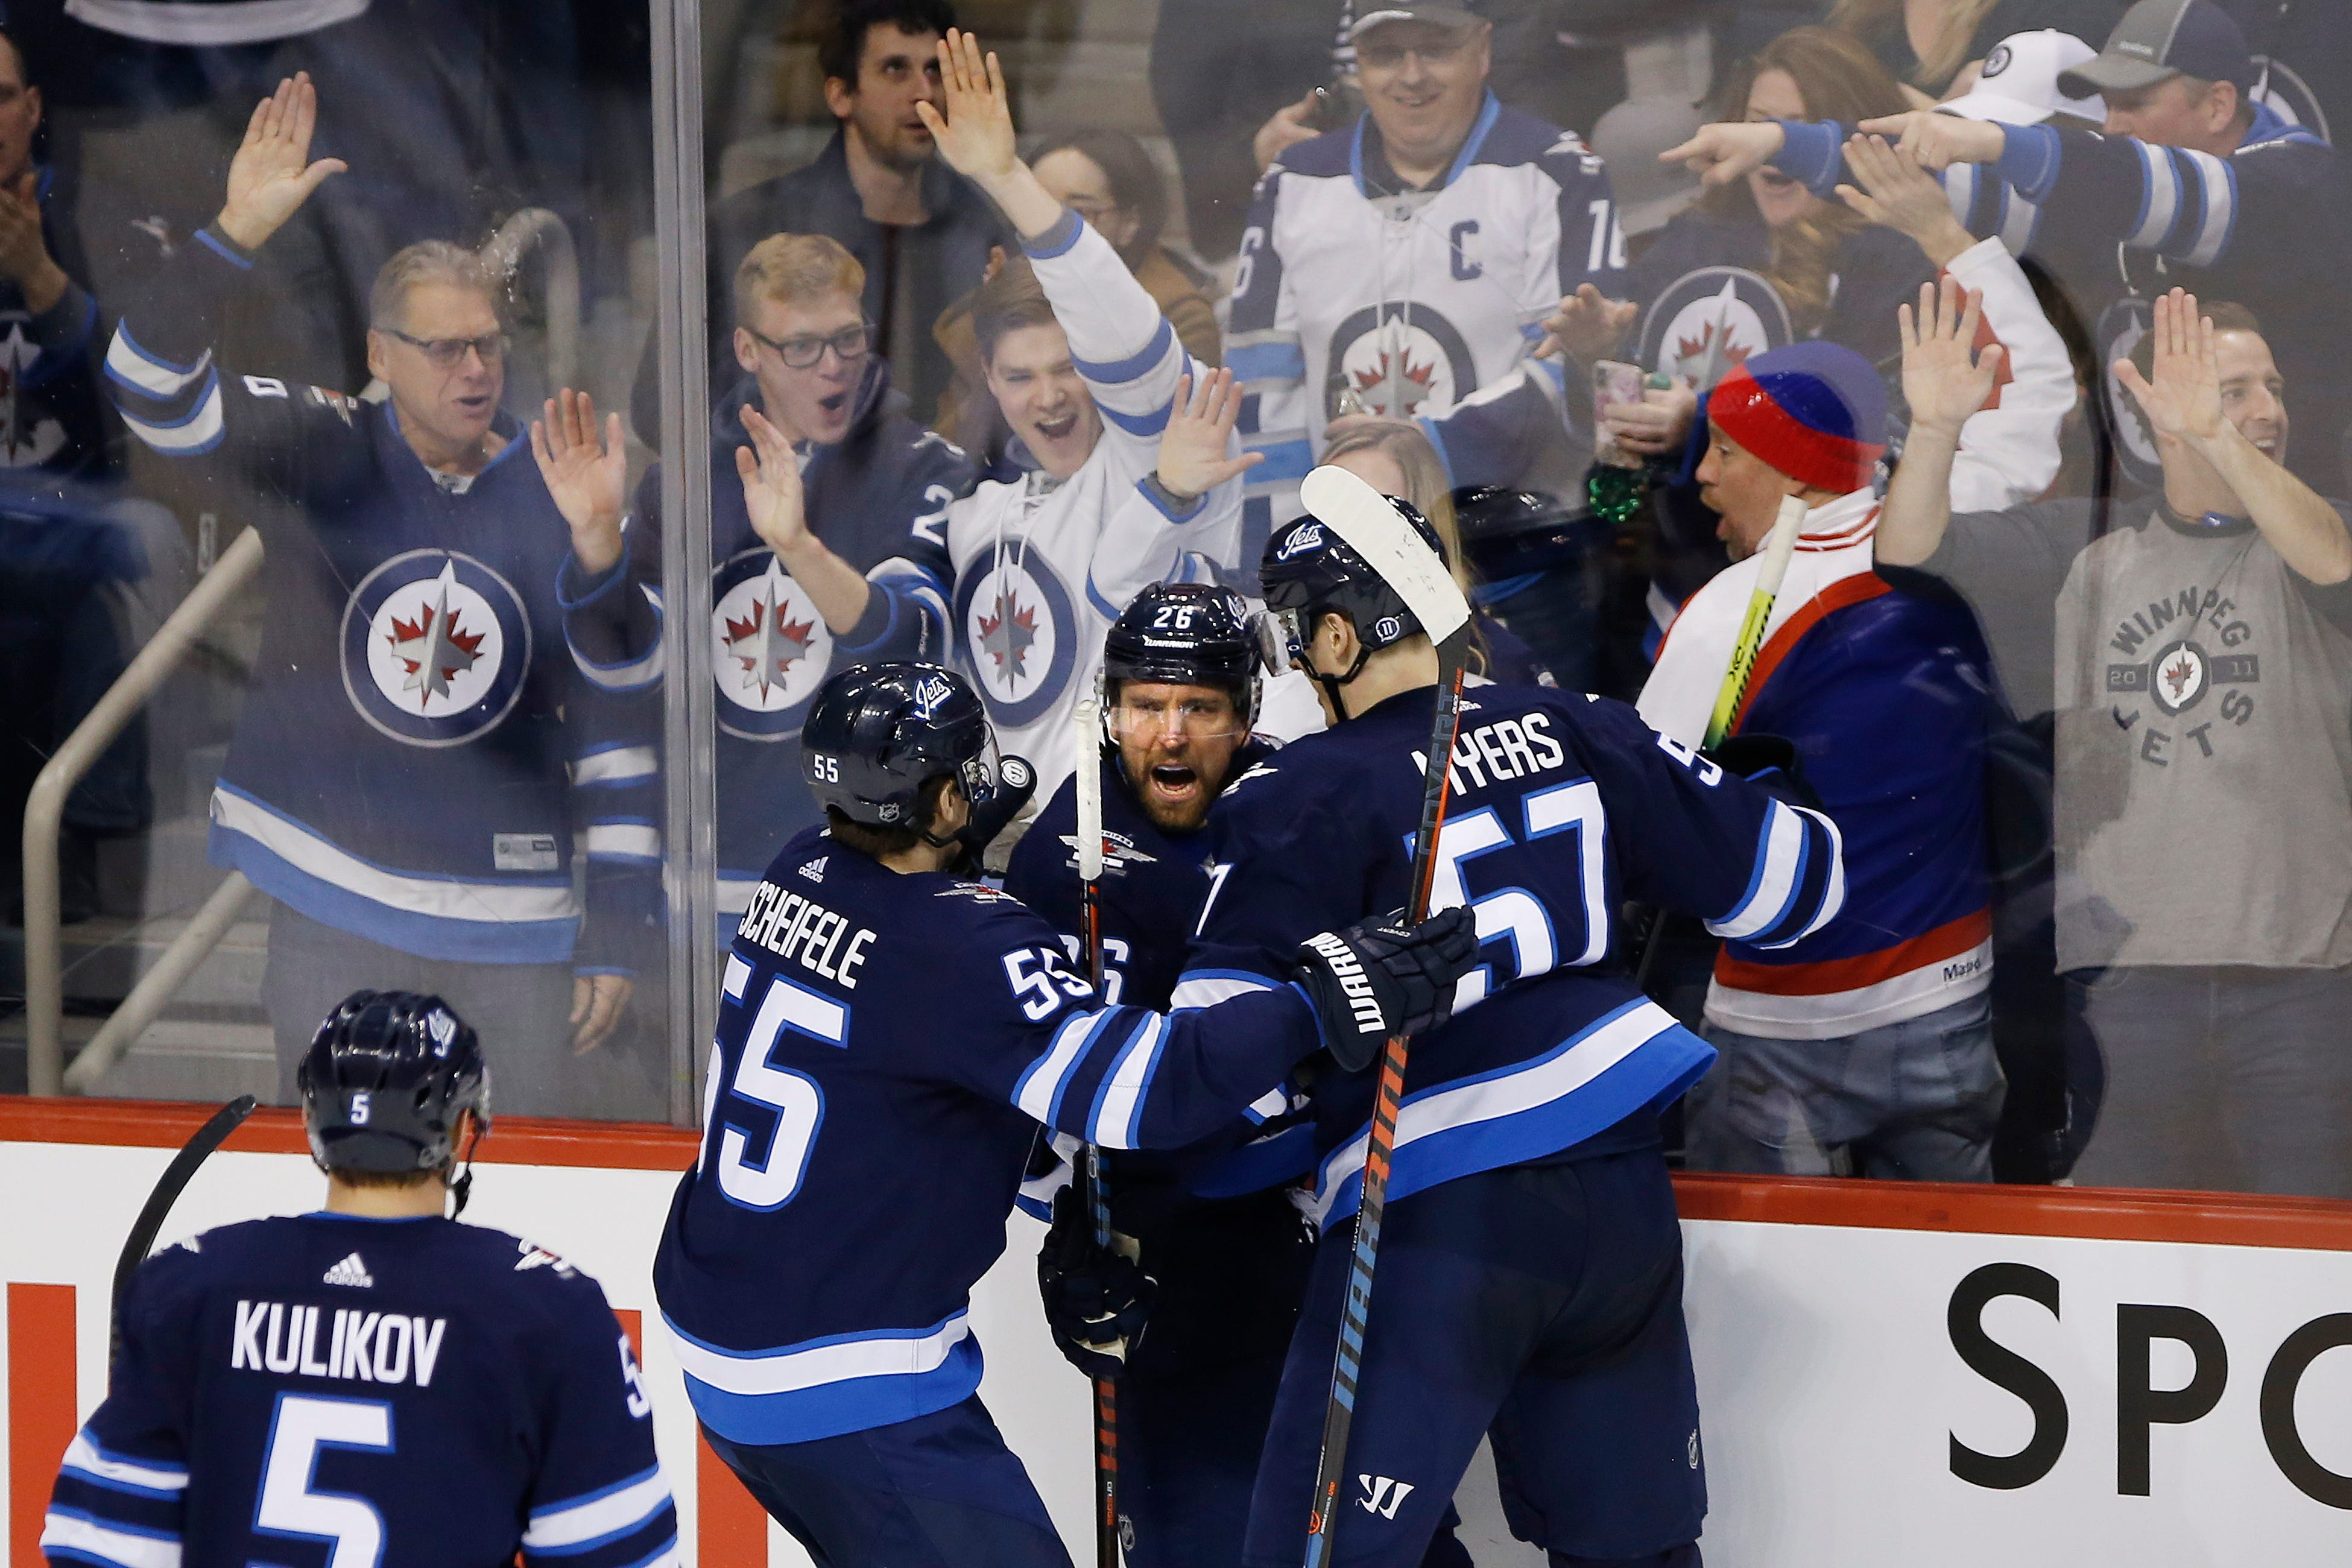 Hayes scores 1st goal with Jets in 5-3 win over Predators